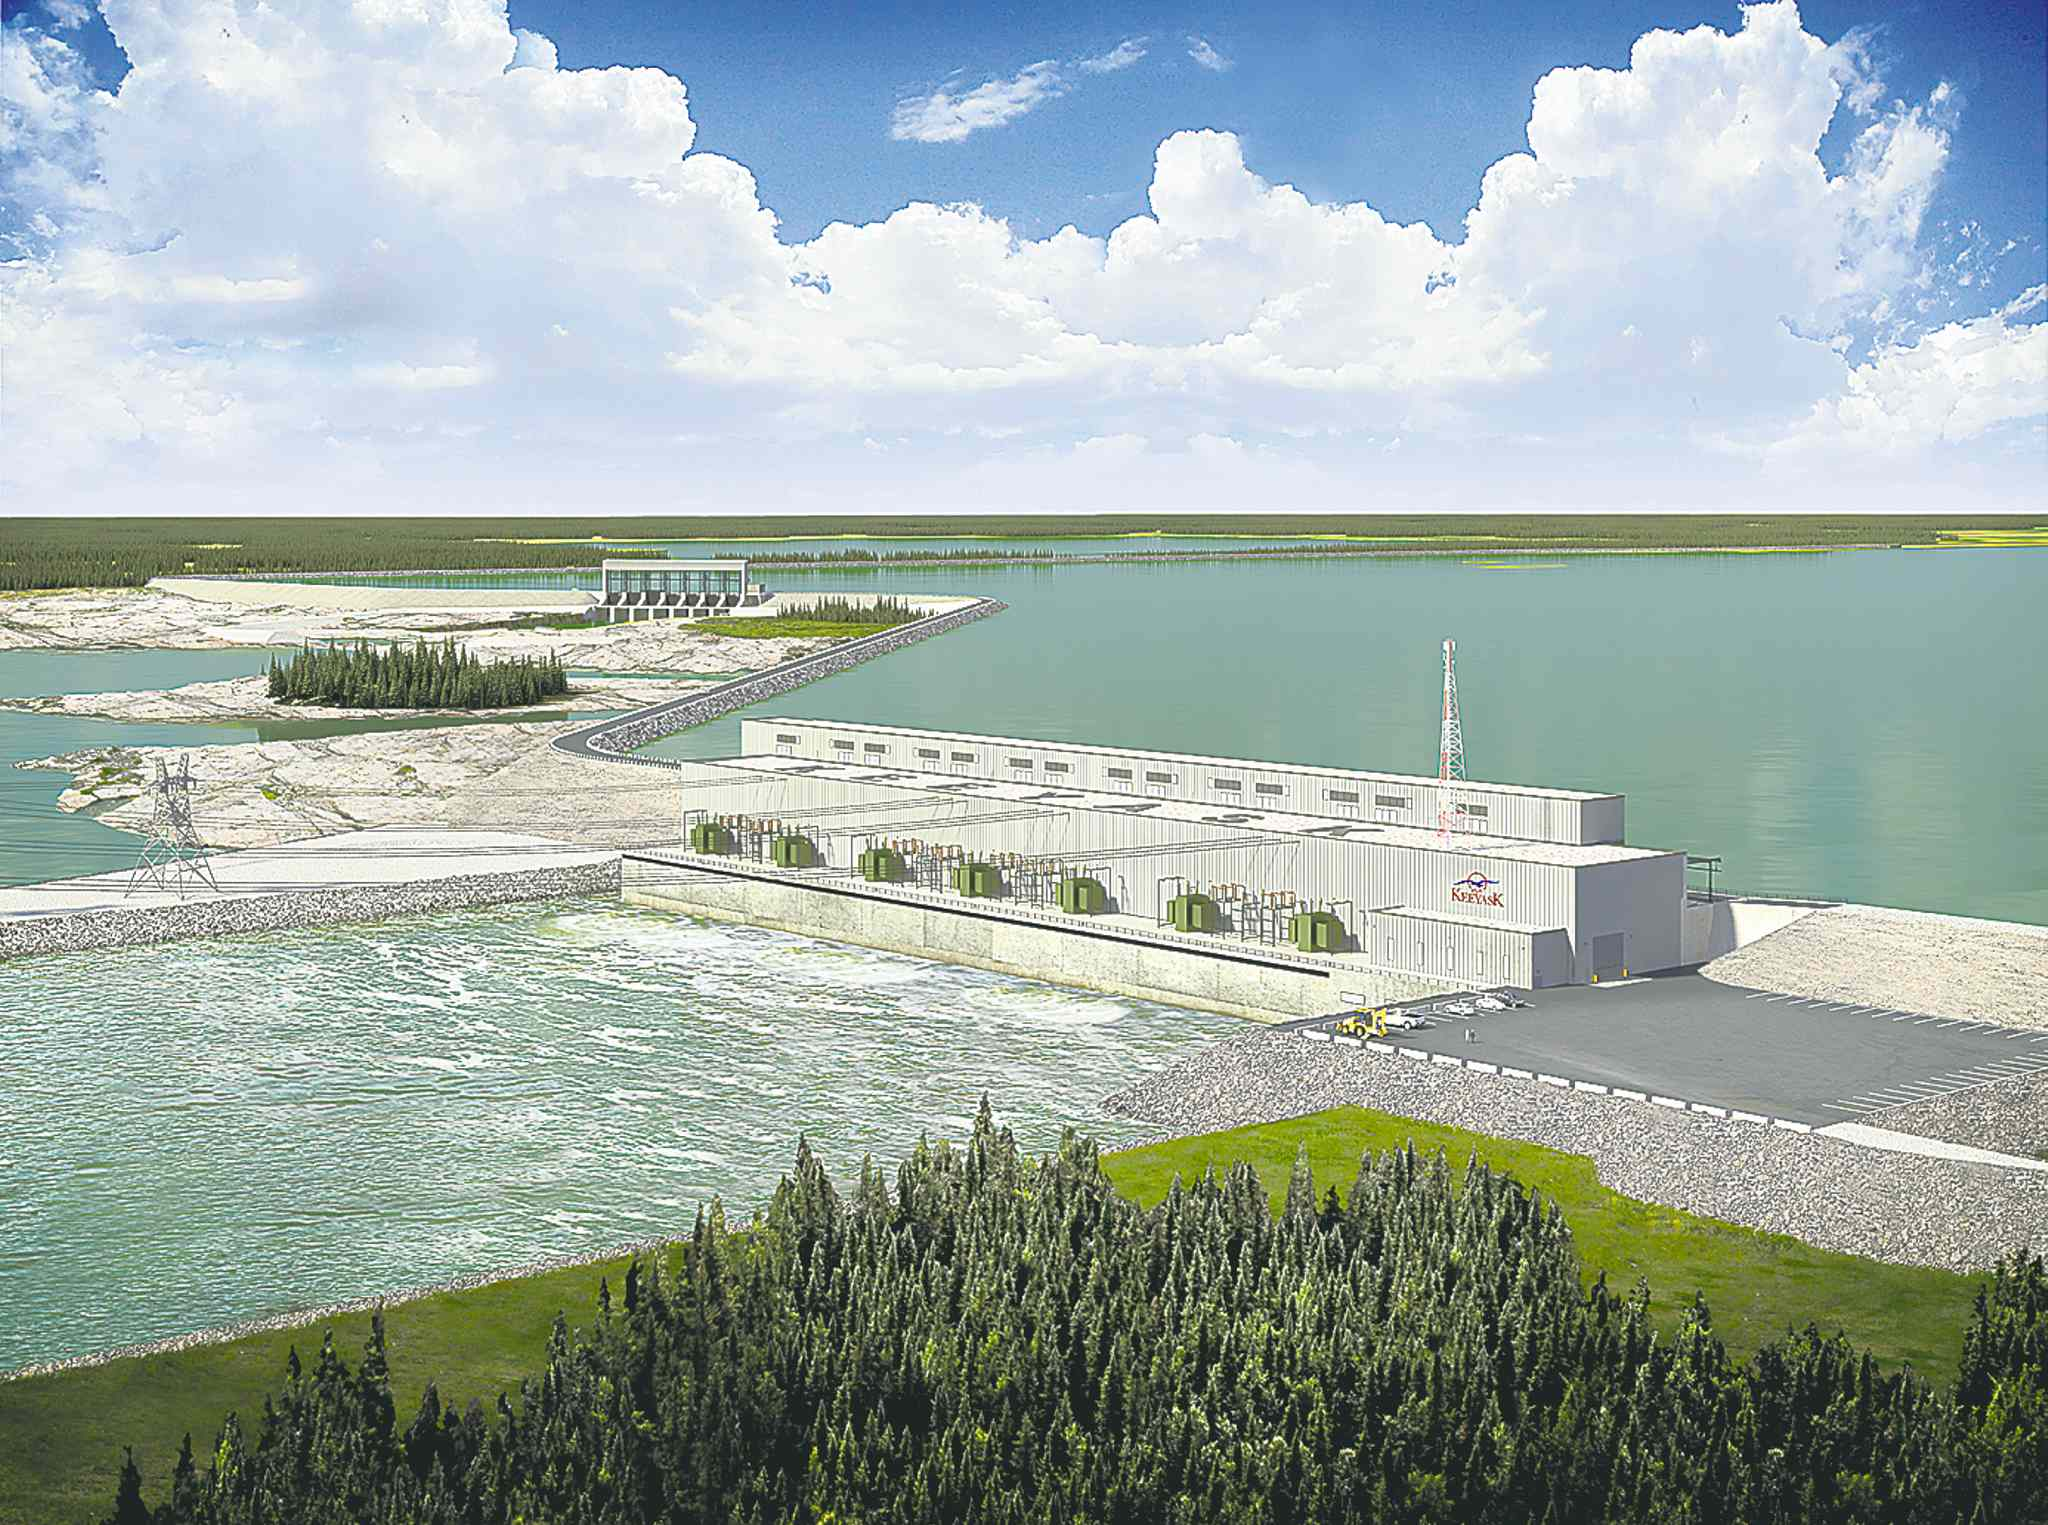 Artist's rendering of the proposed Keeyask generating station.